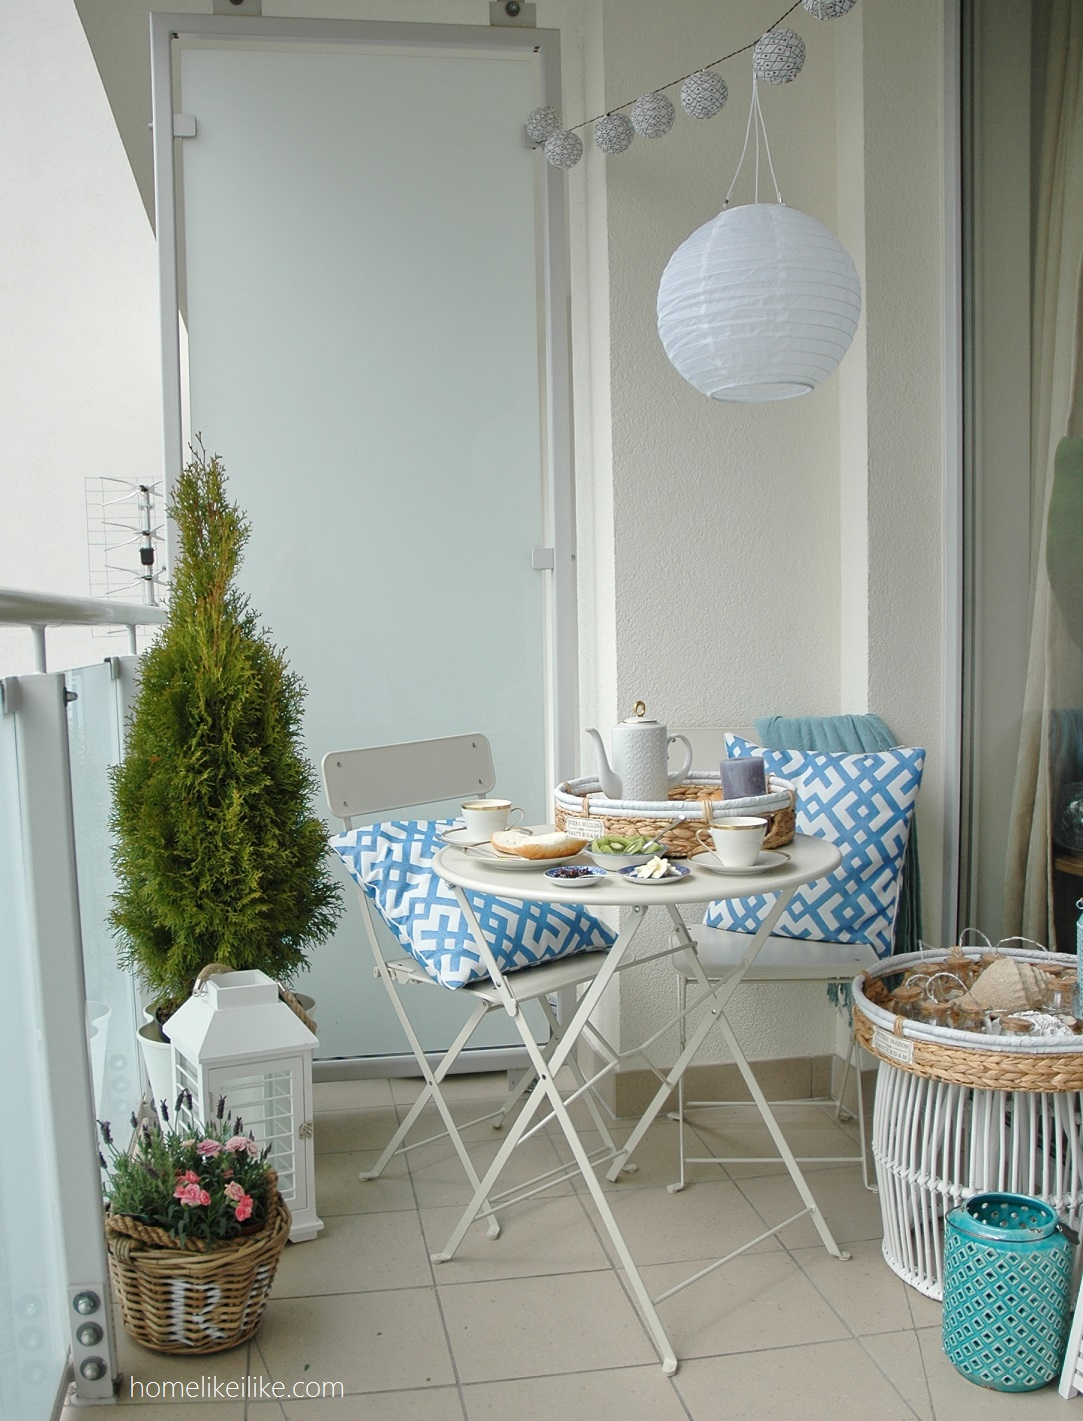 balkon ze Sweet Living Home Inspirations - homelikeilike.com